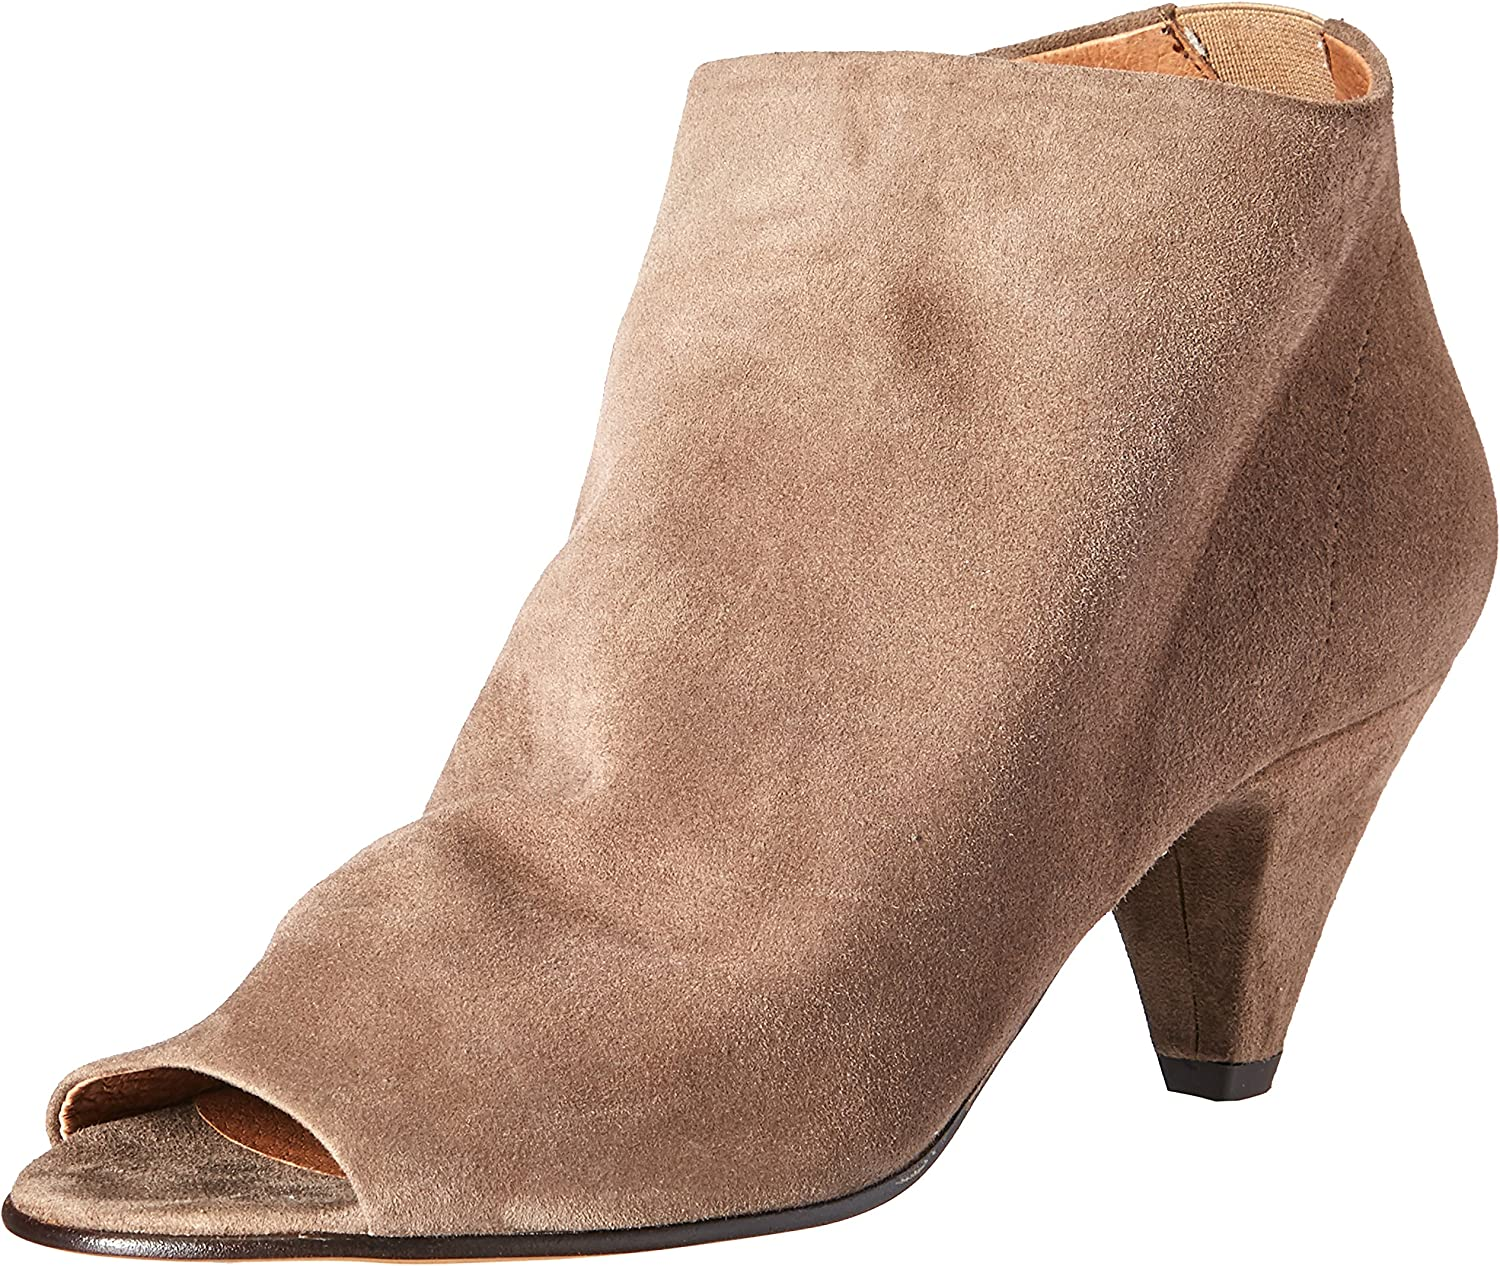 H By Hudson Womens Goa Suede Ankle Bootie